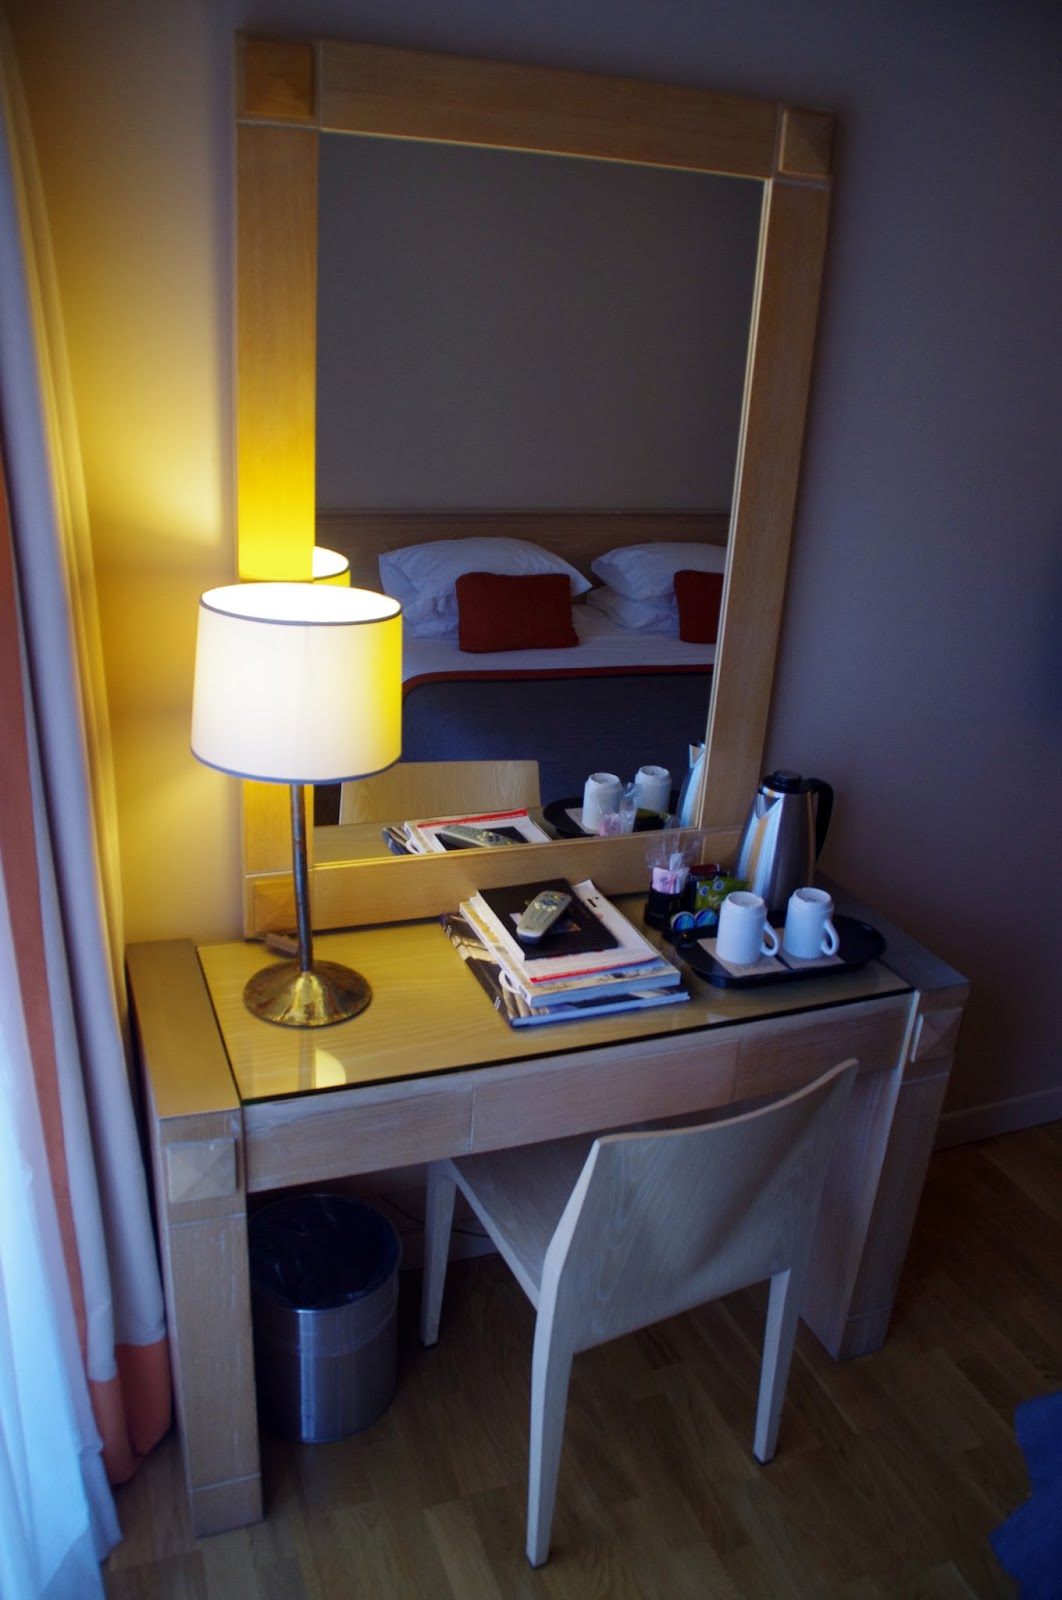 The Herodion Hotel Mirror and Desk